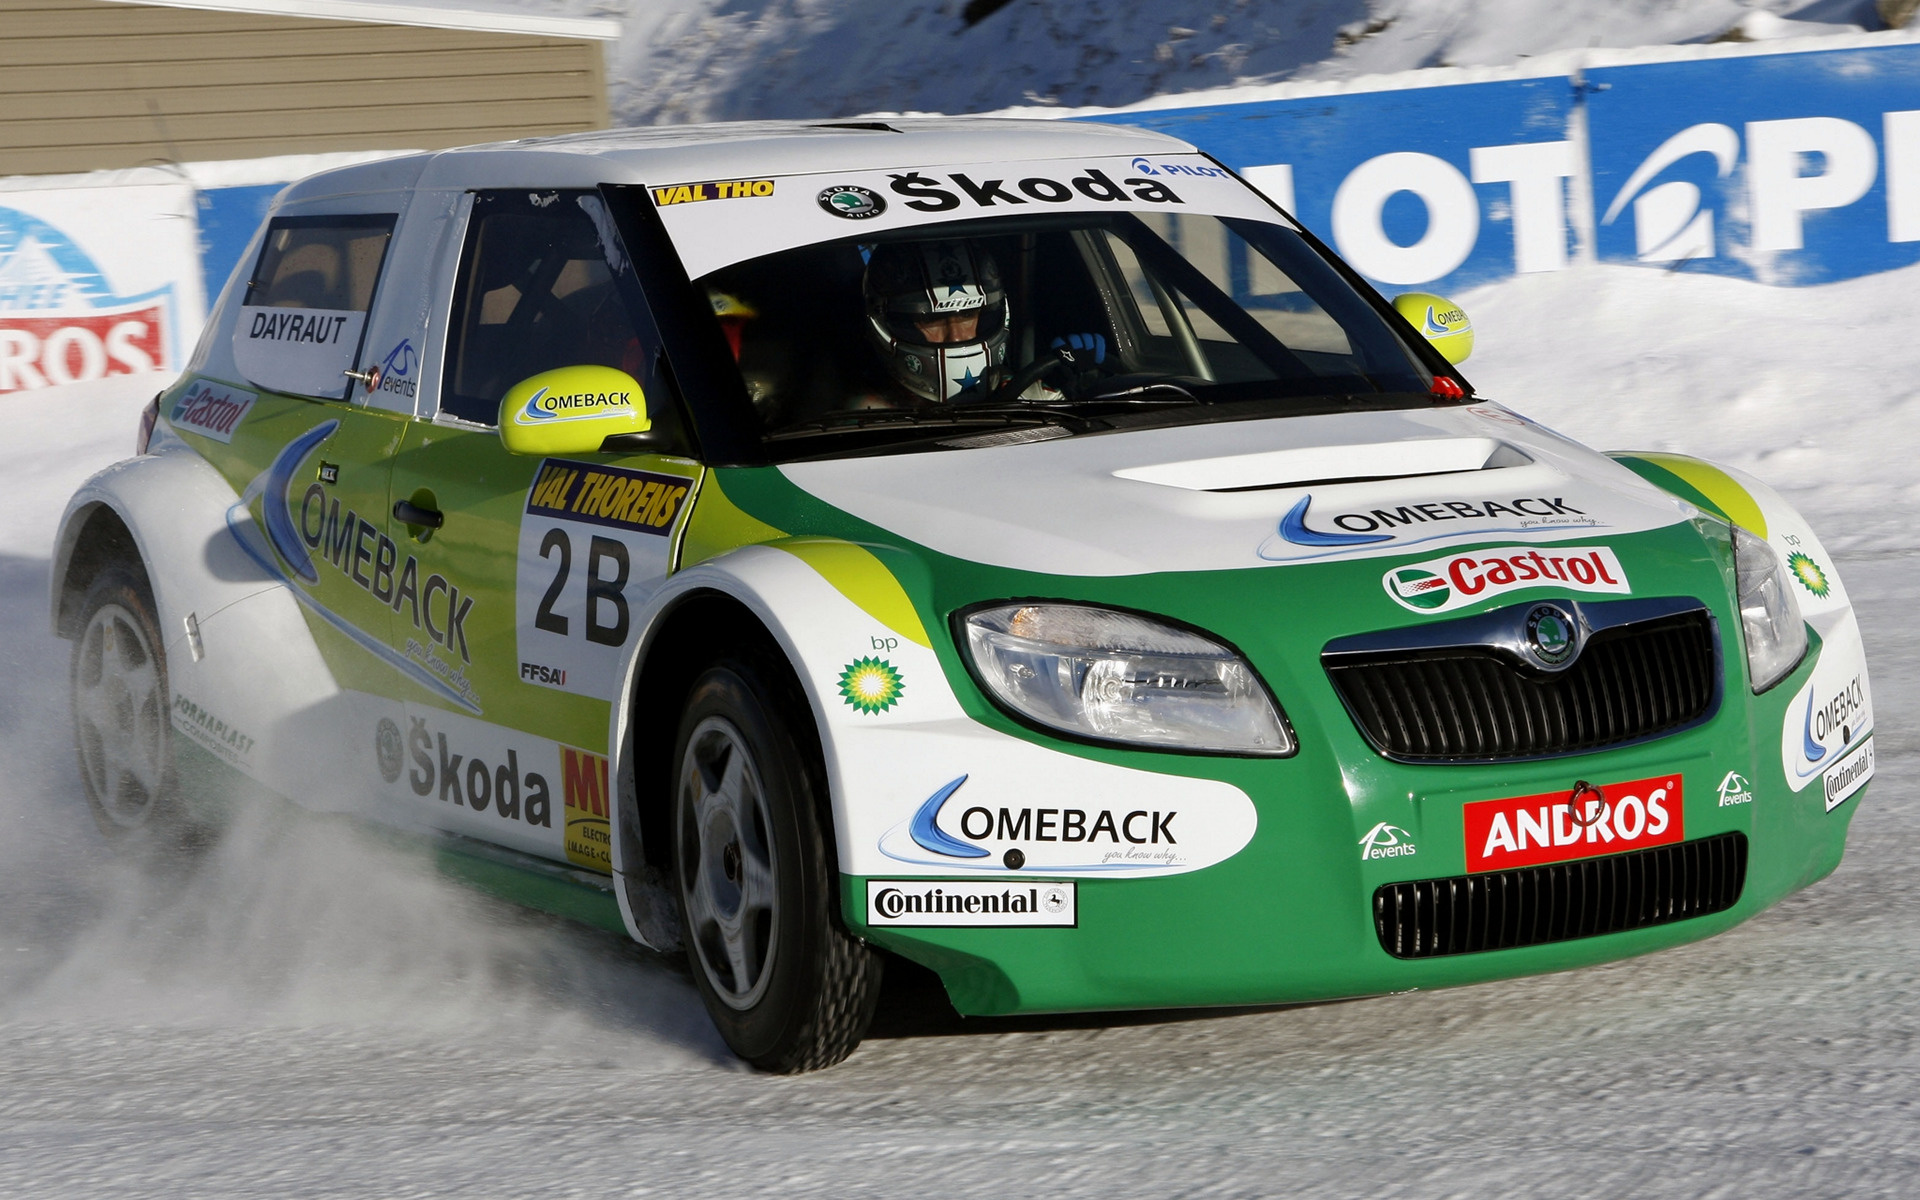 Skoda Fabia Trophee Andros 2010 Wallpapers And Hd Images